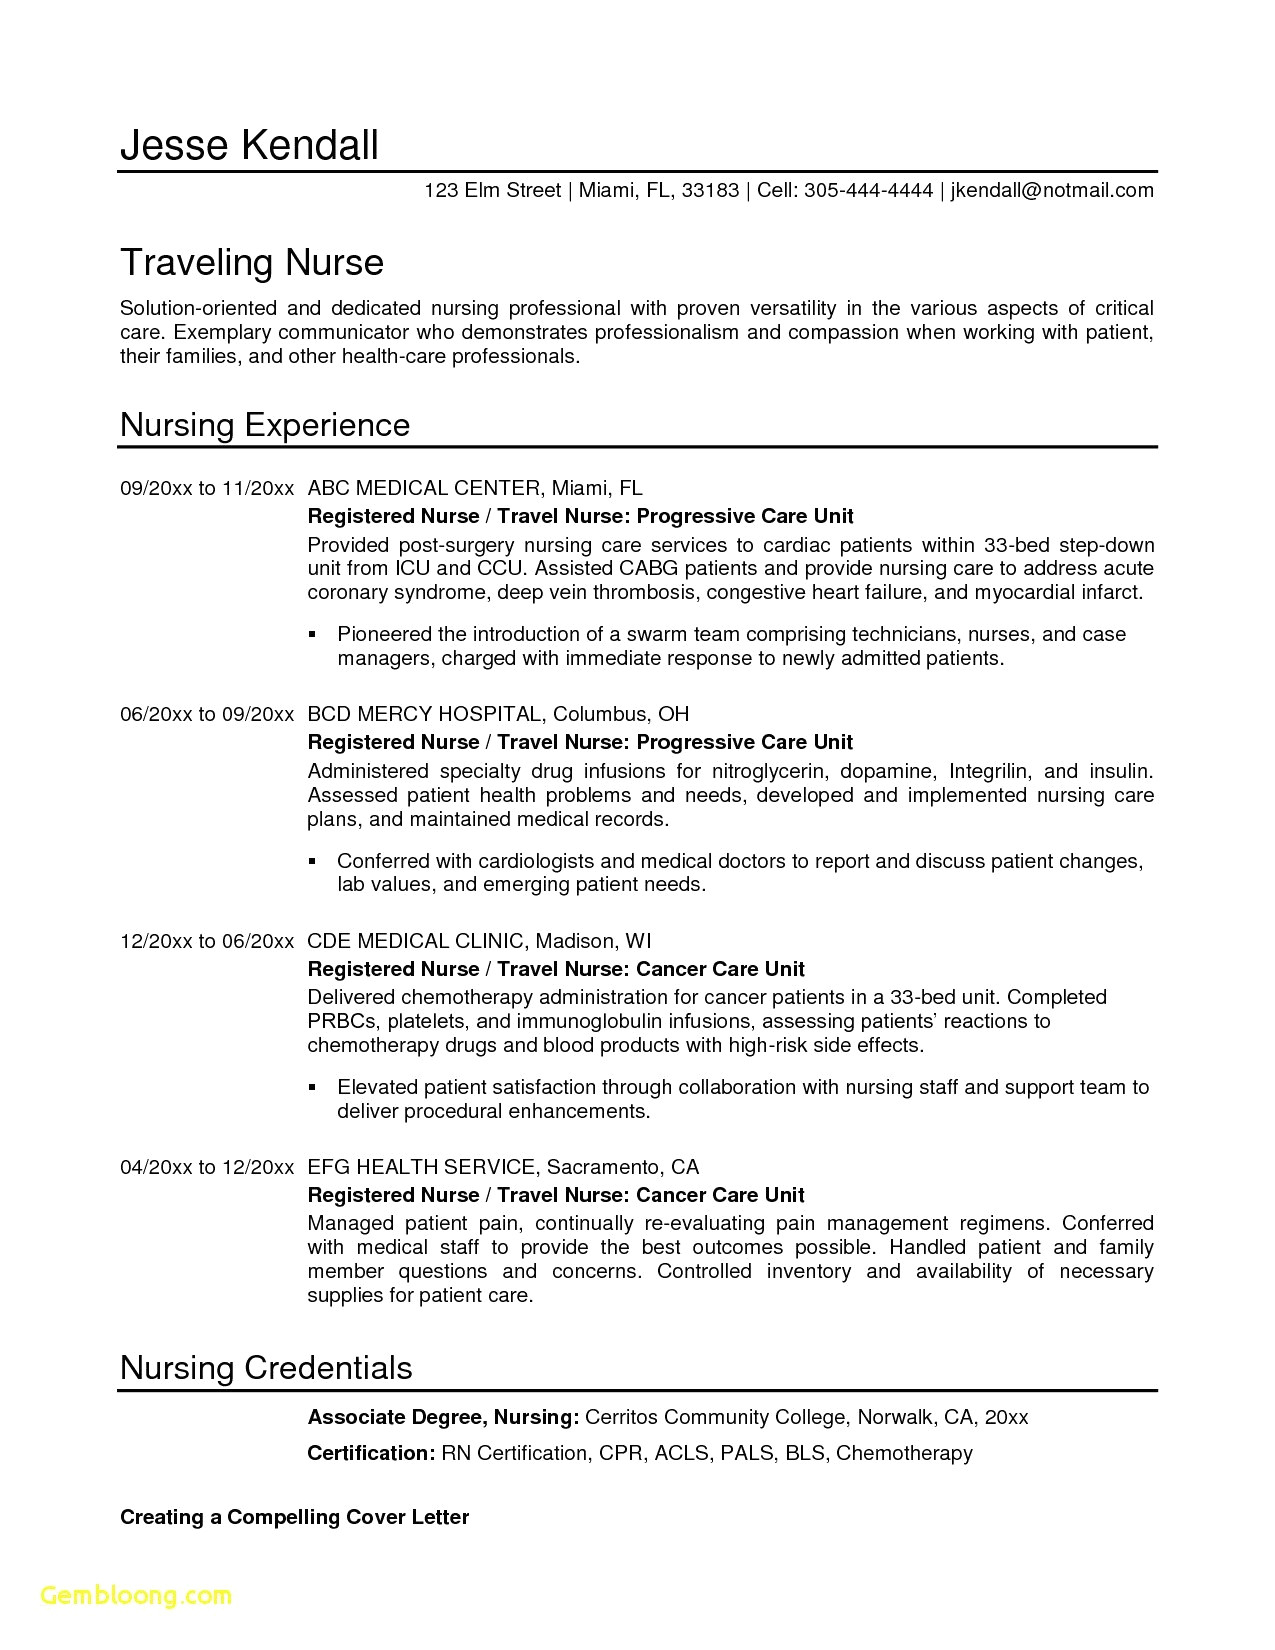 writer resume template example-Related Post resume writing certification of Beautiful Pr Resume Template Elegant Dictionary Template 0d 6-r